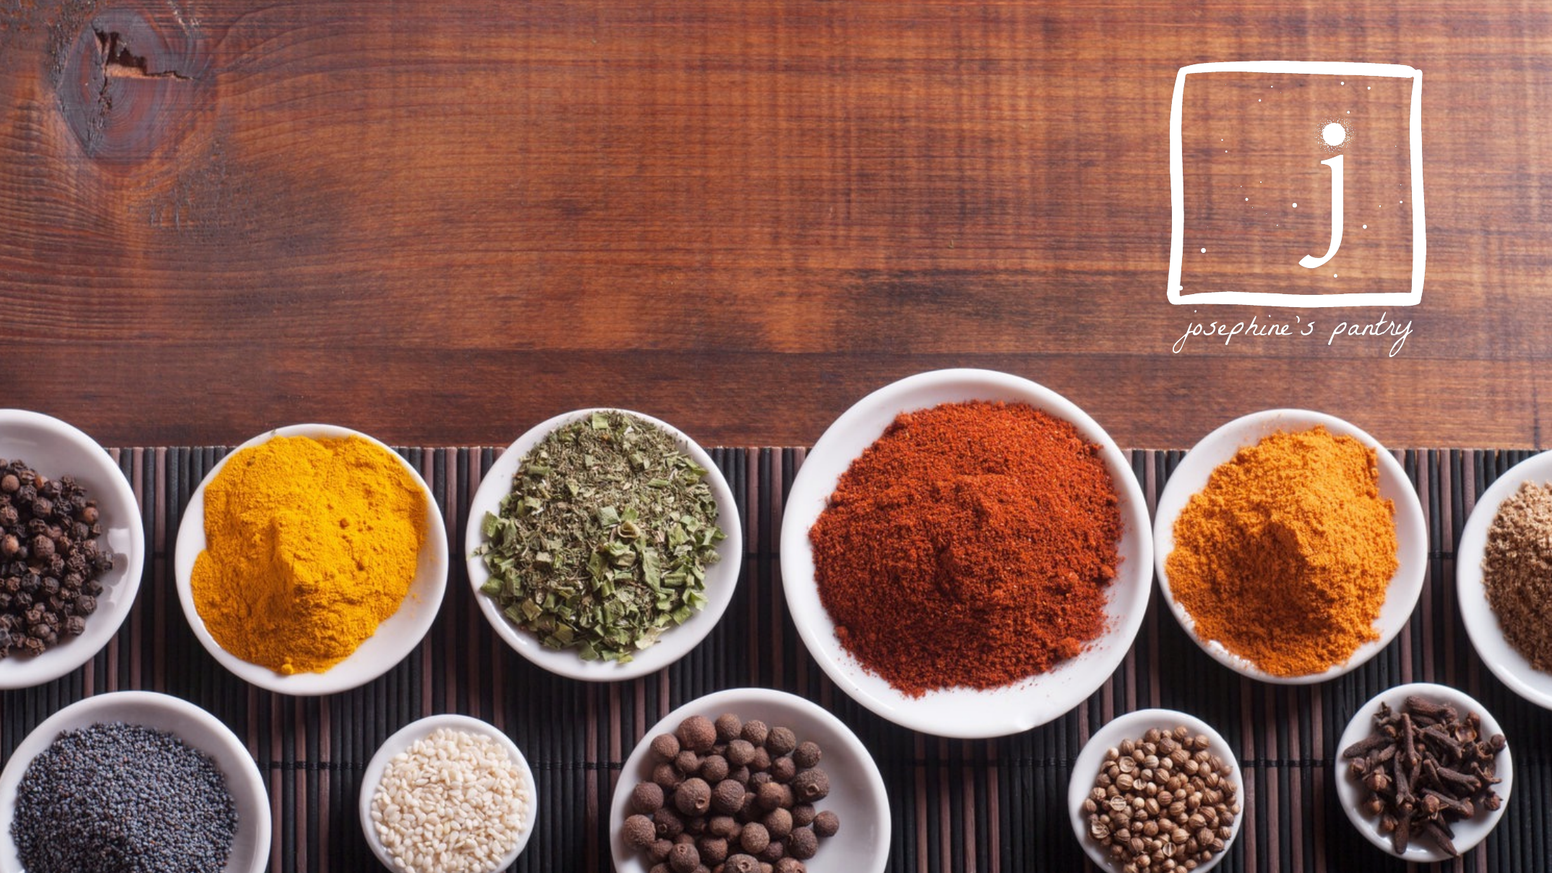 We want to help others make great tasting food with artisan spice blends and stop hunger at the same time.